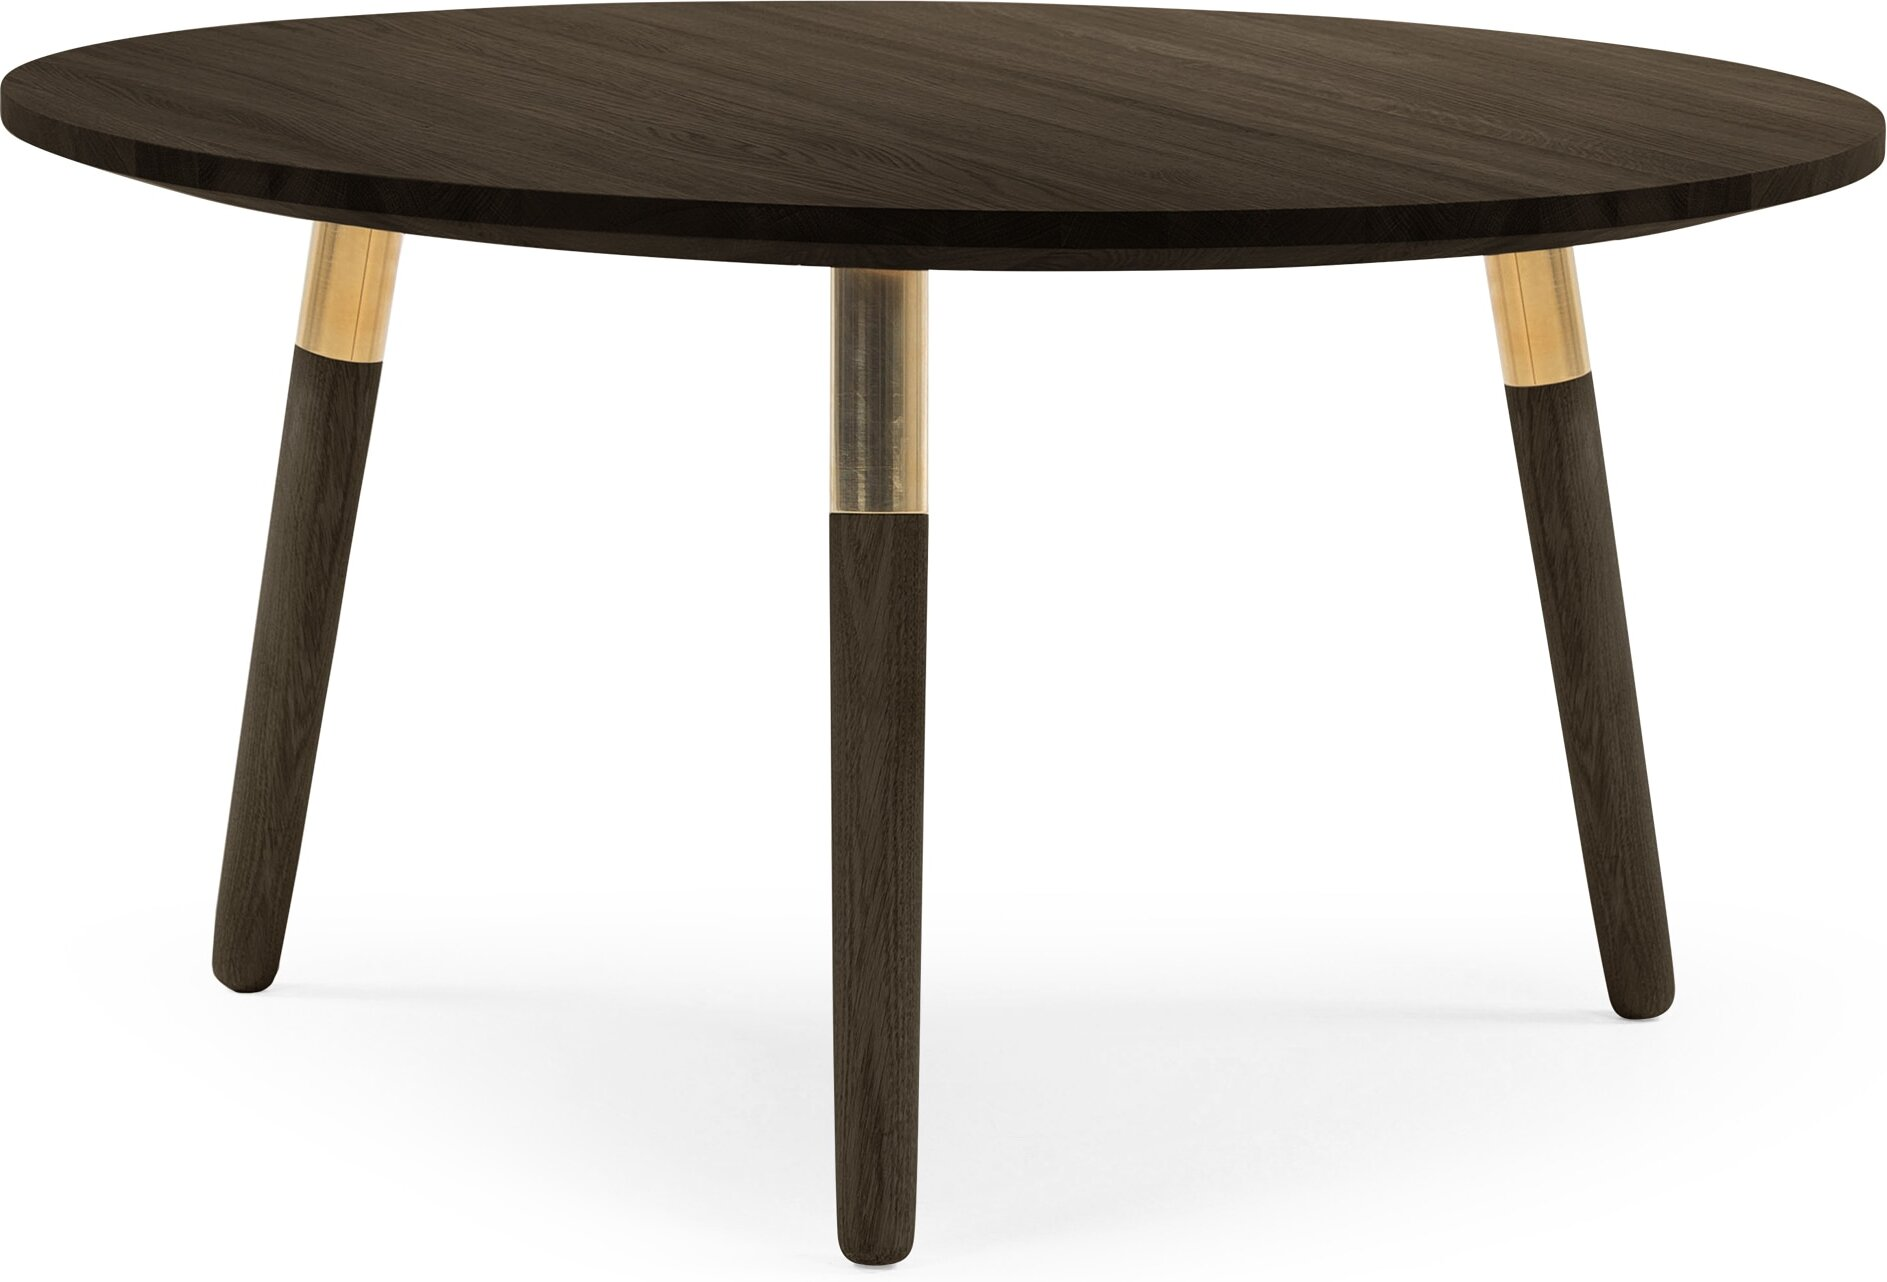 Buy cheap round coffee table compare tables prices for for Buy round table